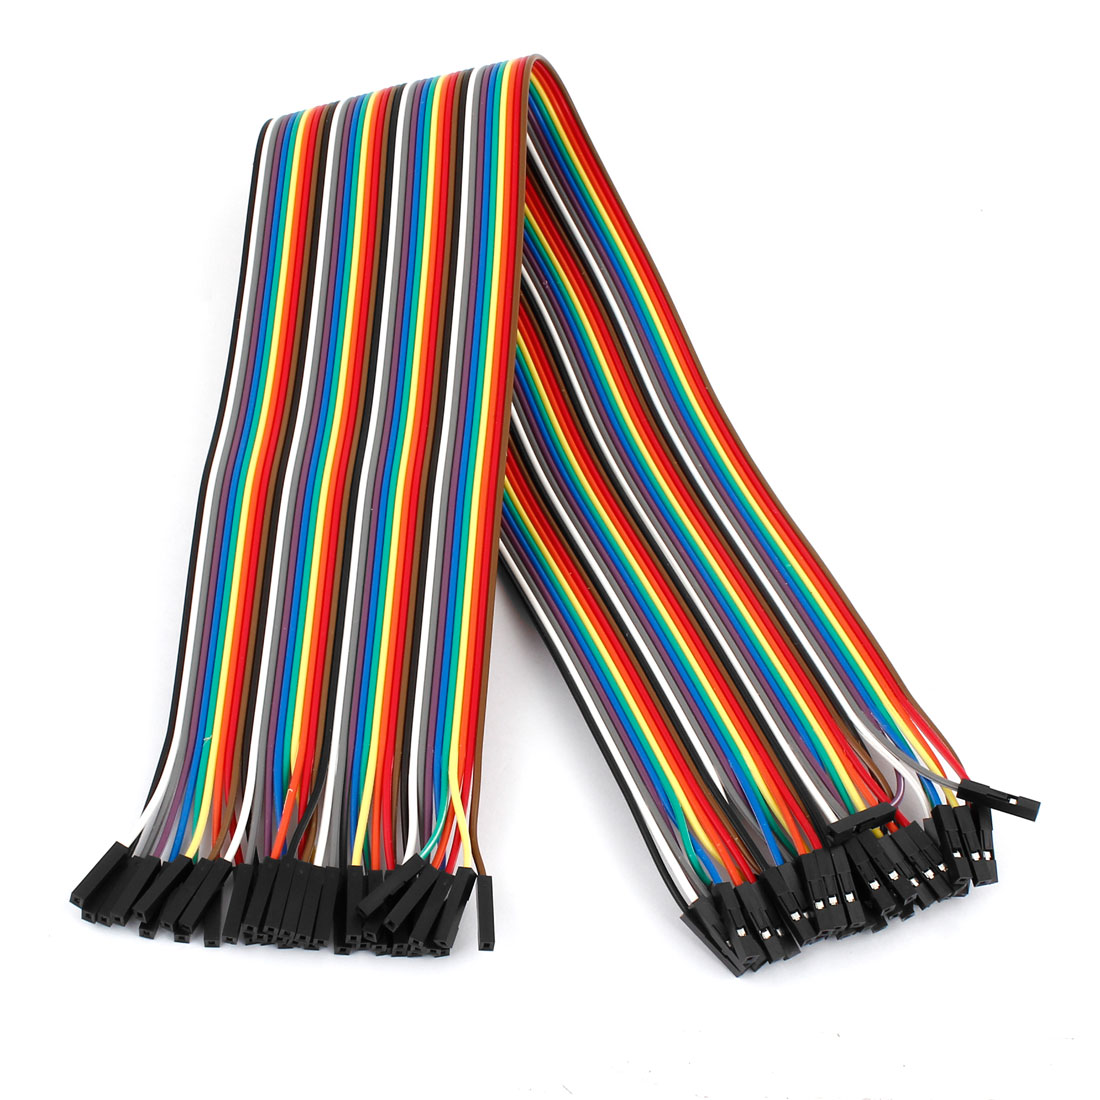 40cm 2.54mm F/F 40 Pin Solderless Colored Flexible Breadboard Jumper Wire